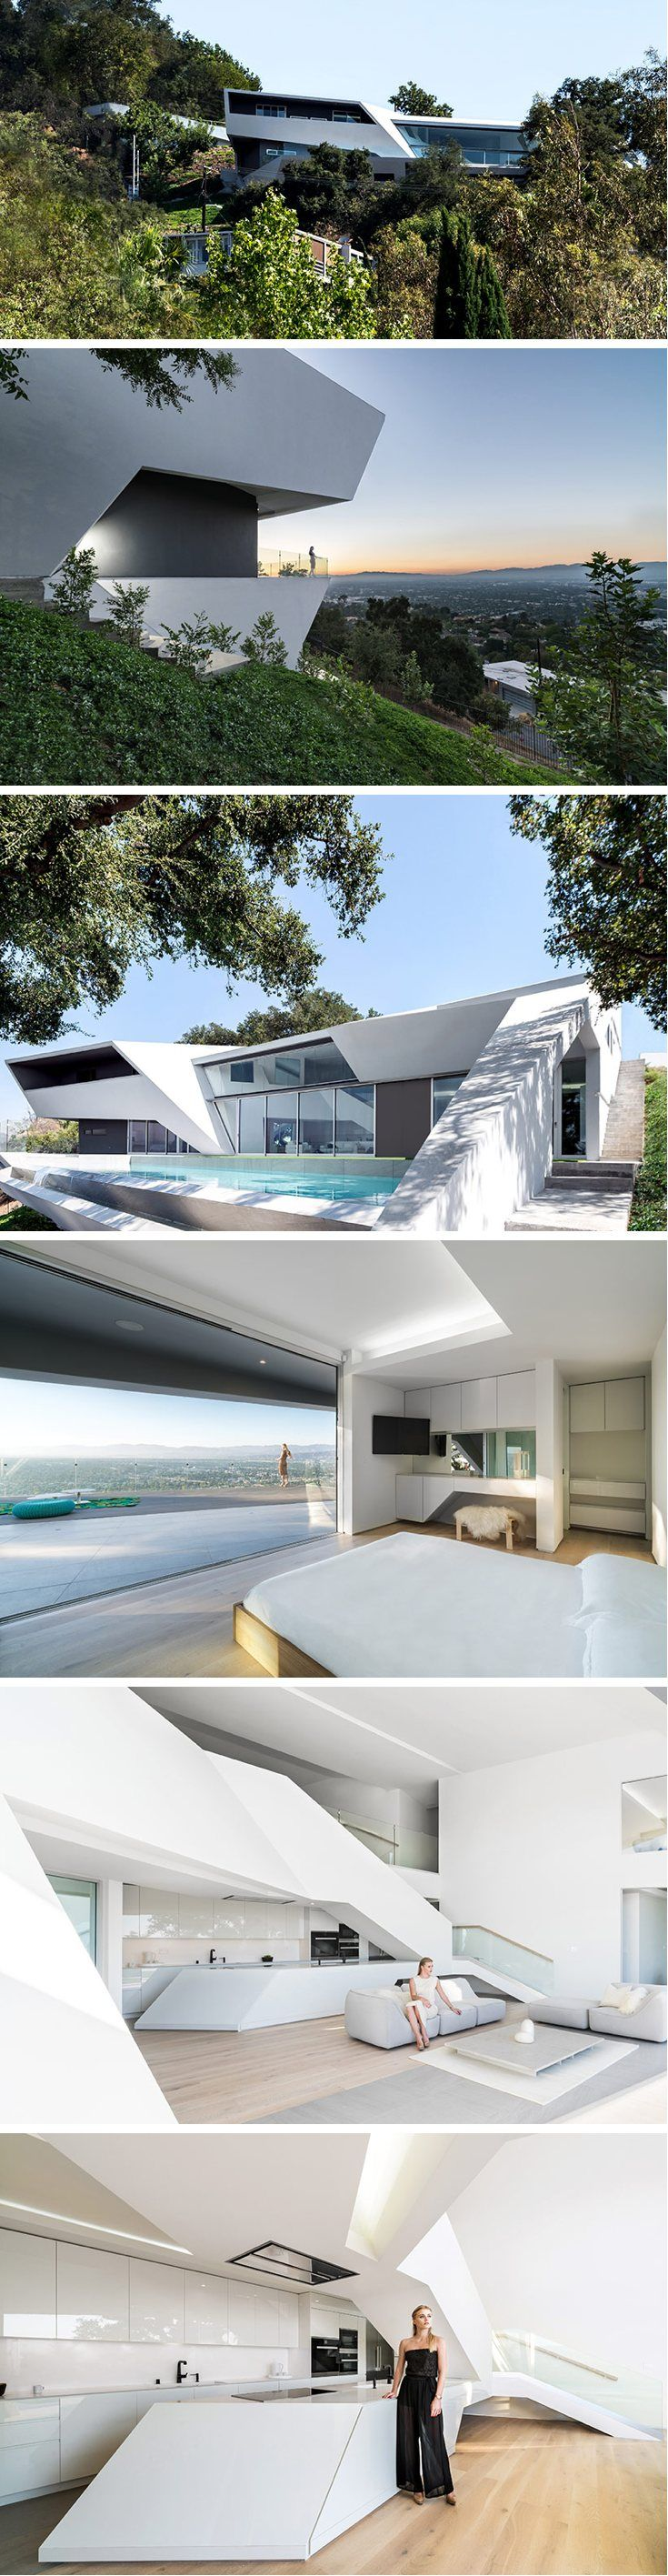 412 best yd architecture images on pinterest architecture house mu77 house by arshia architects